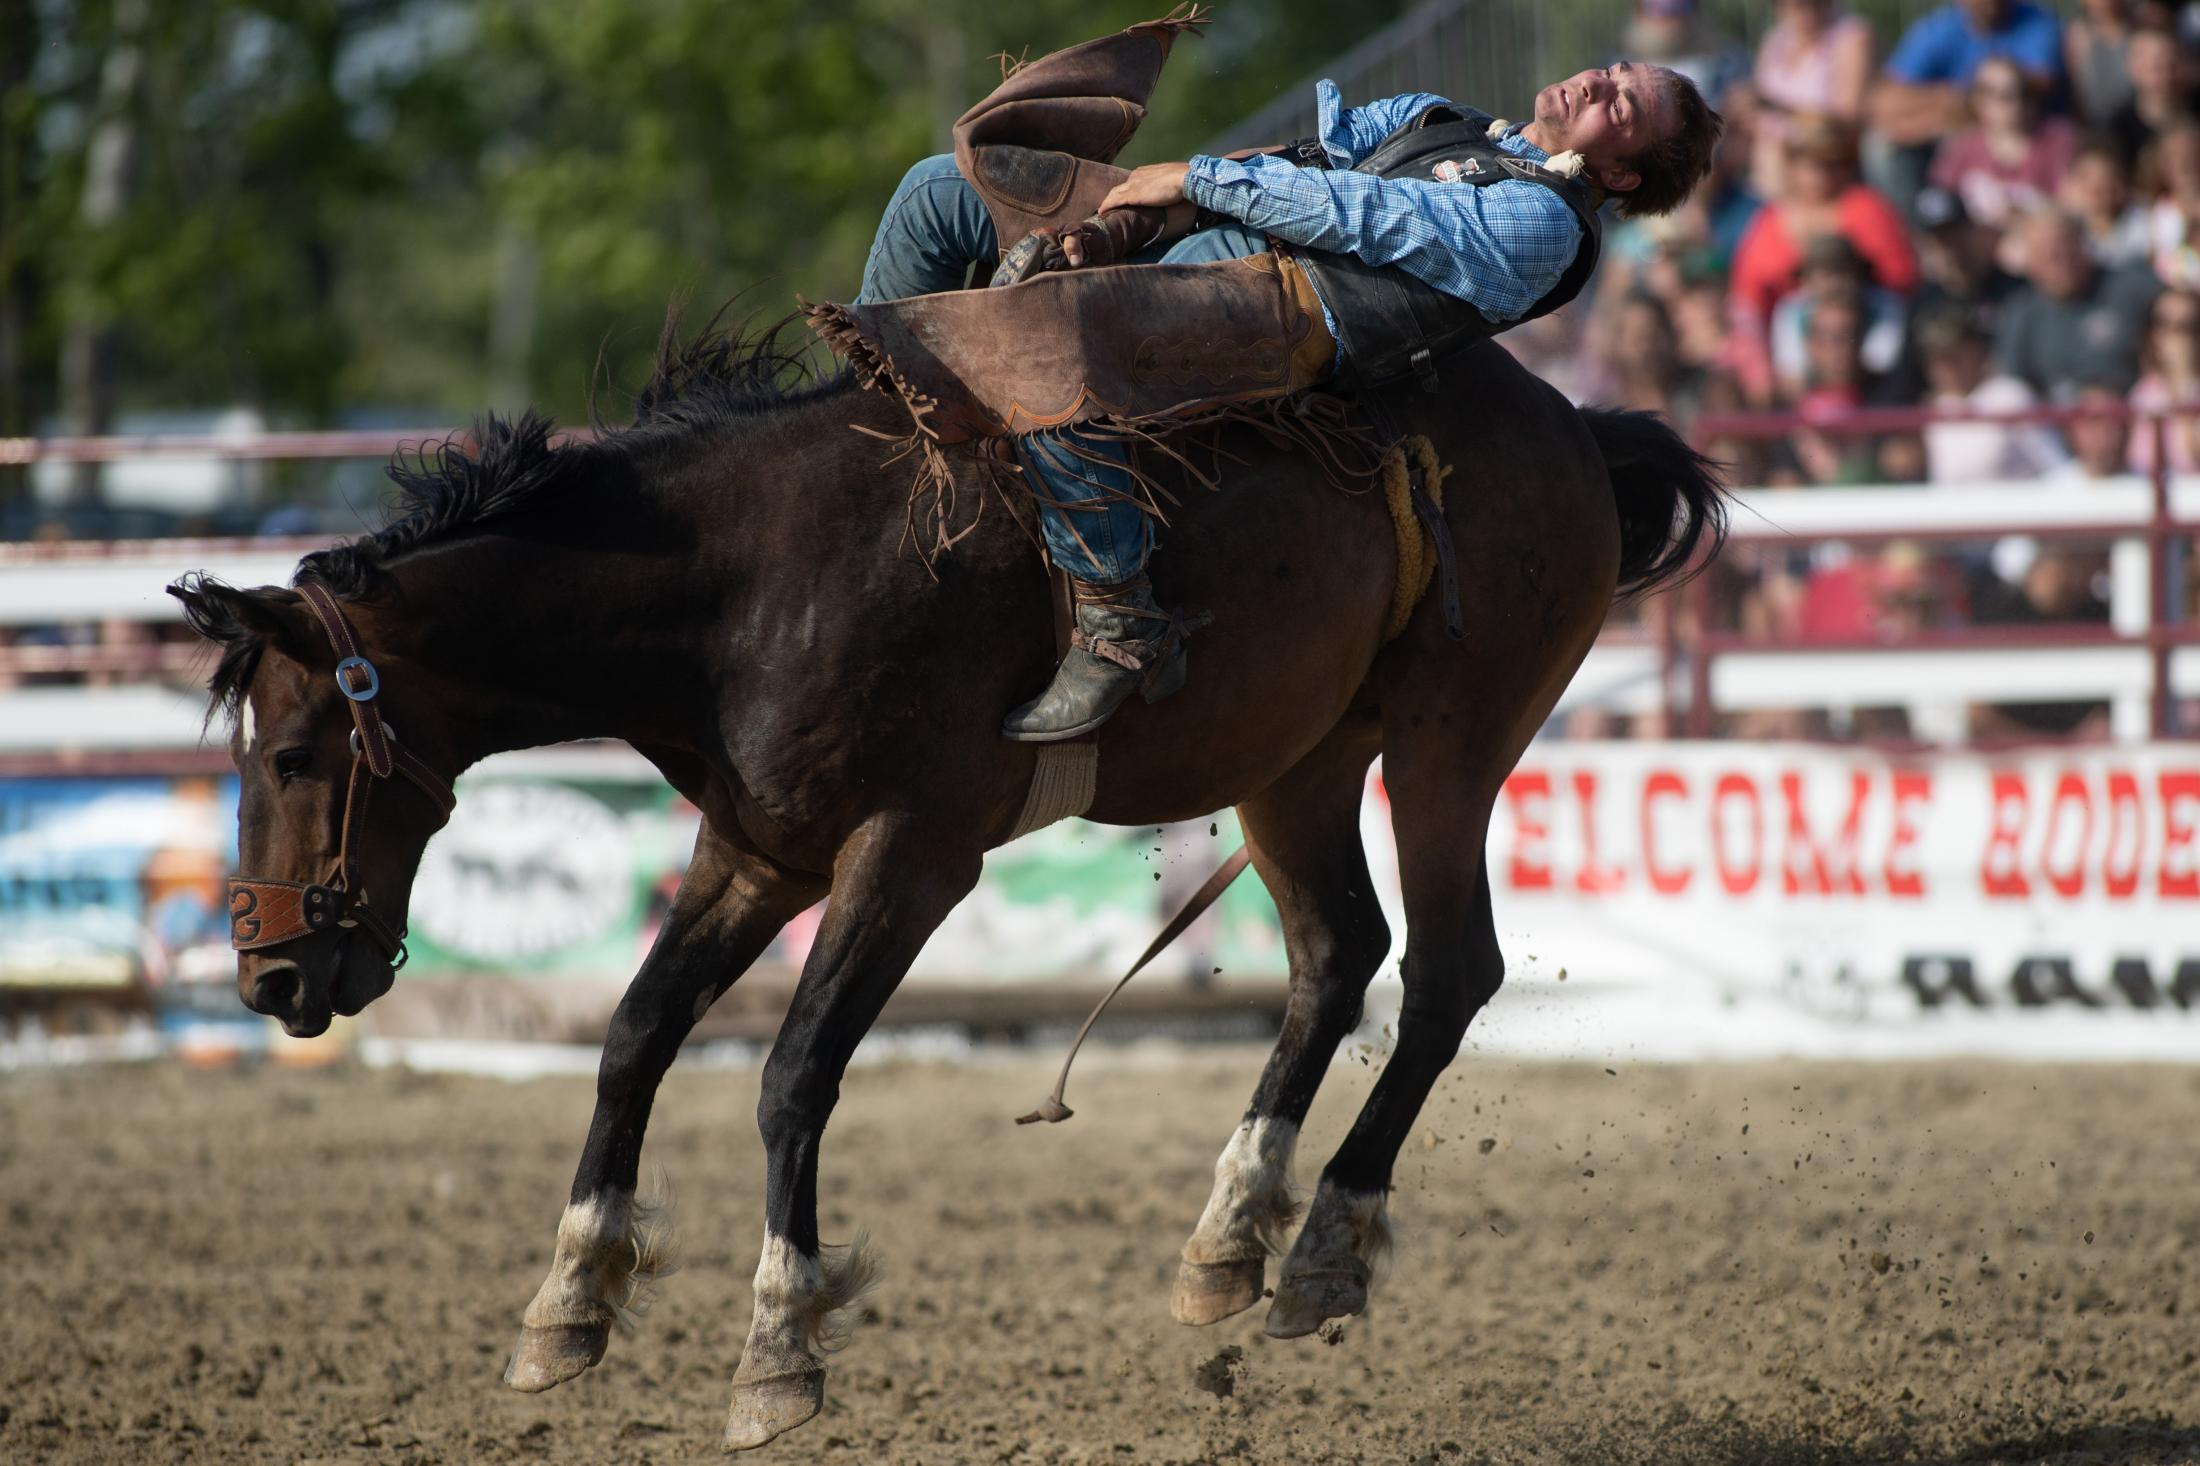 Eli Hershberger from Pifford, New York opens the PRCA rodeo at the Goshen Stampede in Goshen, CT in the bareback horse riding competition on June 15, 2019.